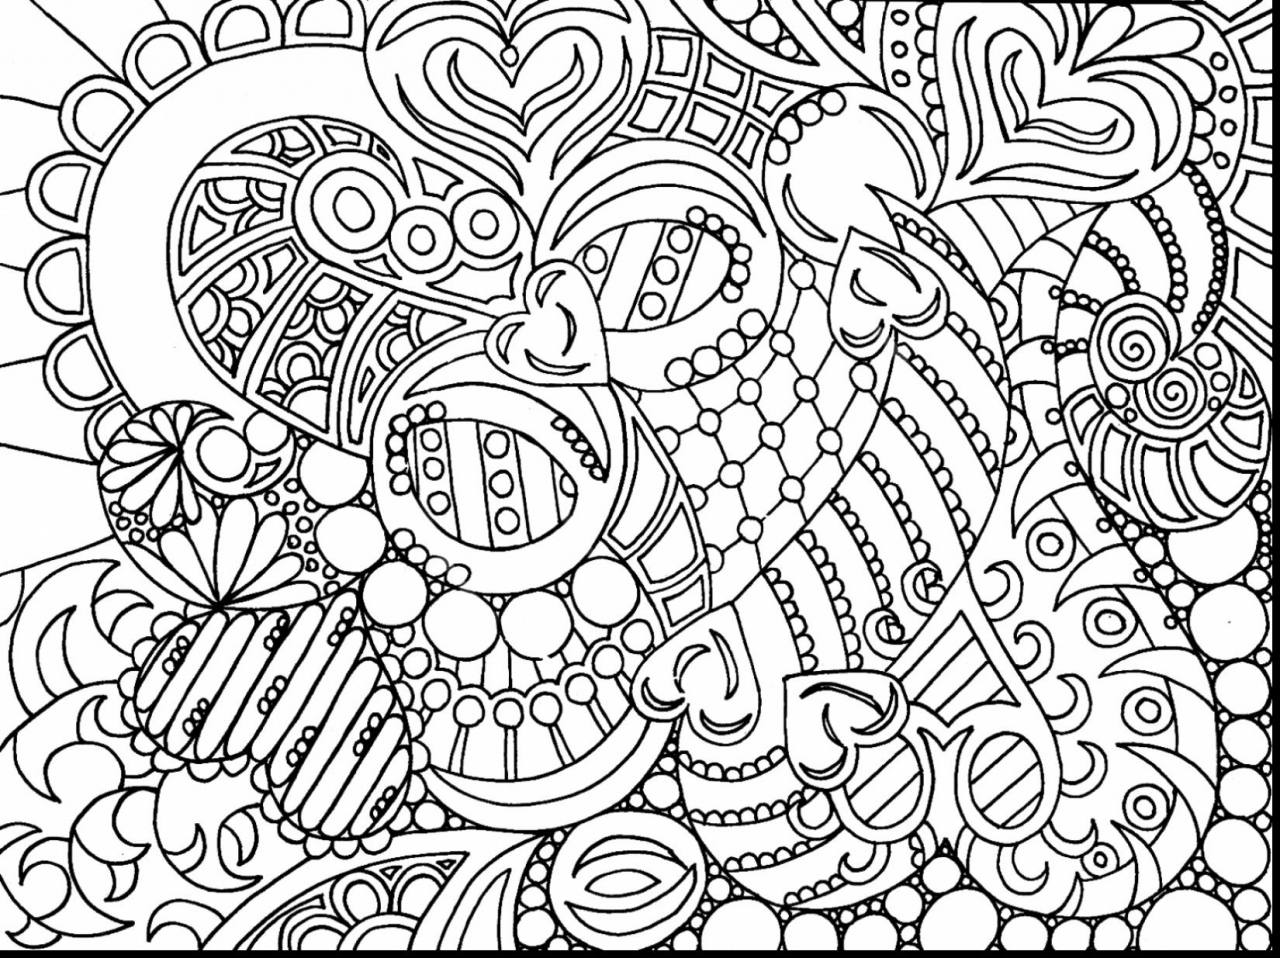 Get This Printable Difficult Coloring Pages for Adults 46271 !